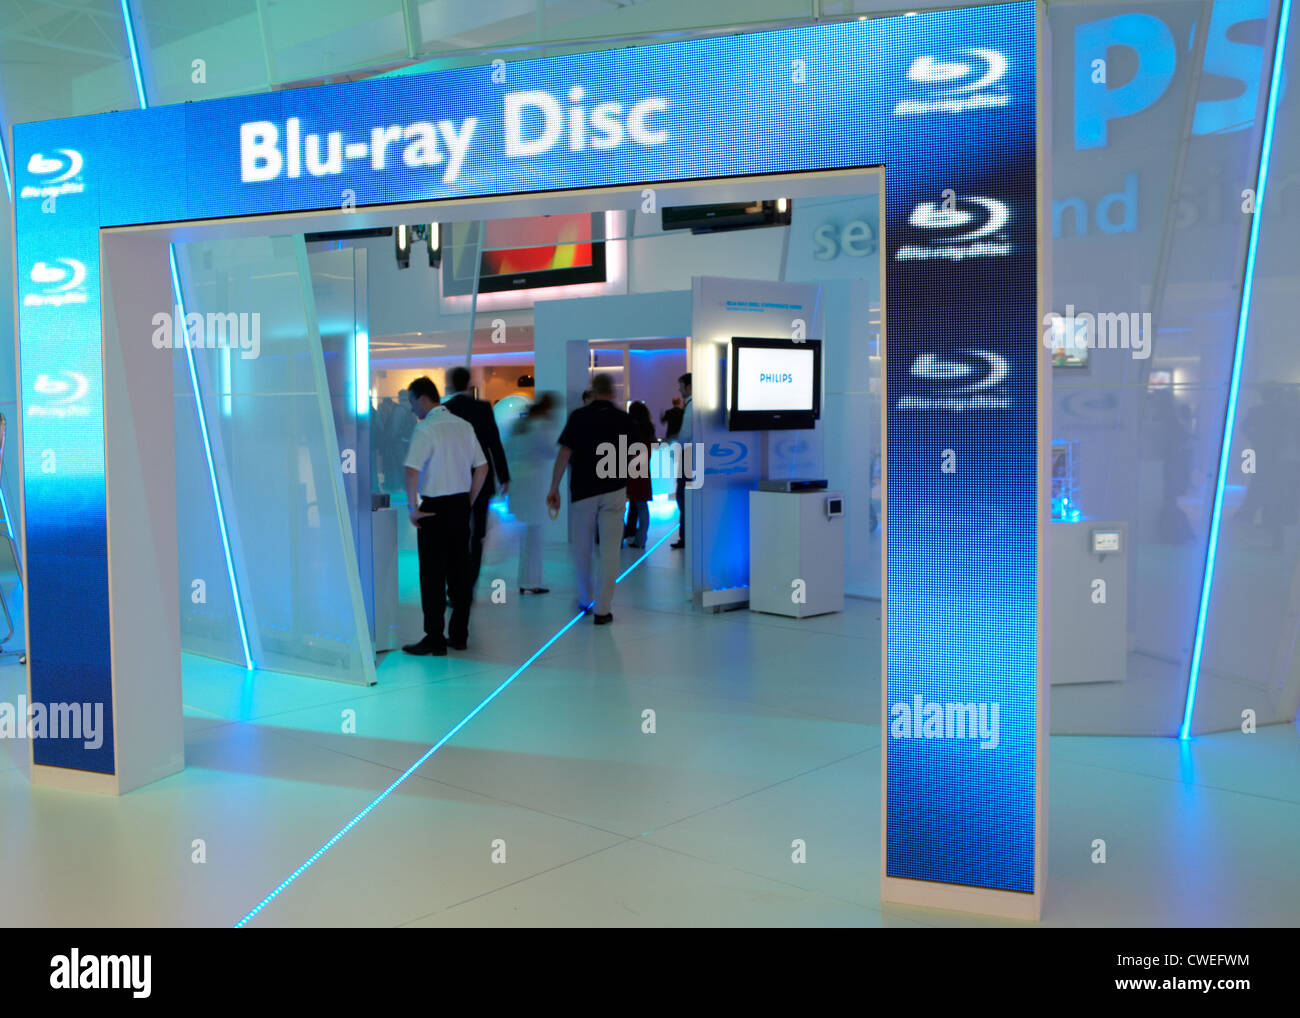 Philips at IFA everything related to the application of the Blu-ray Disc - Stock Image